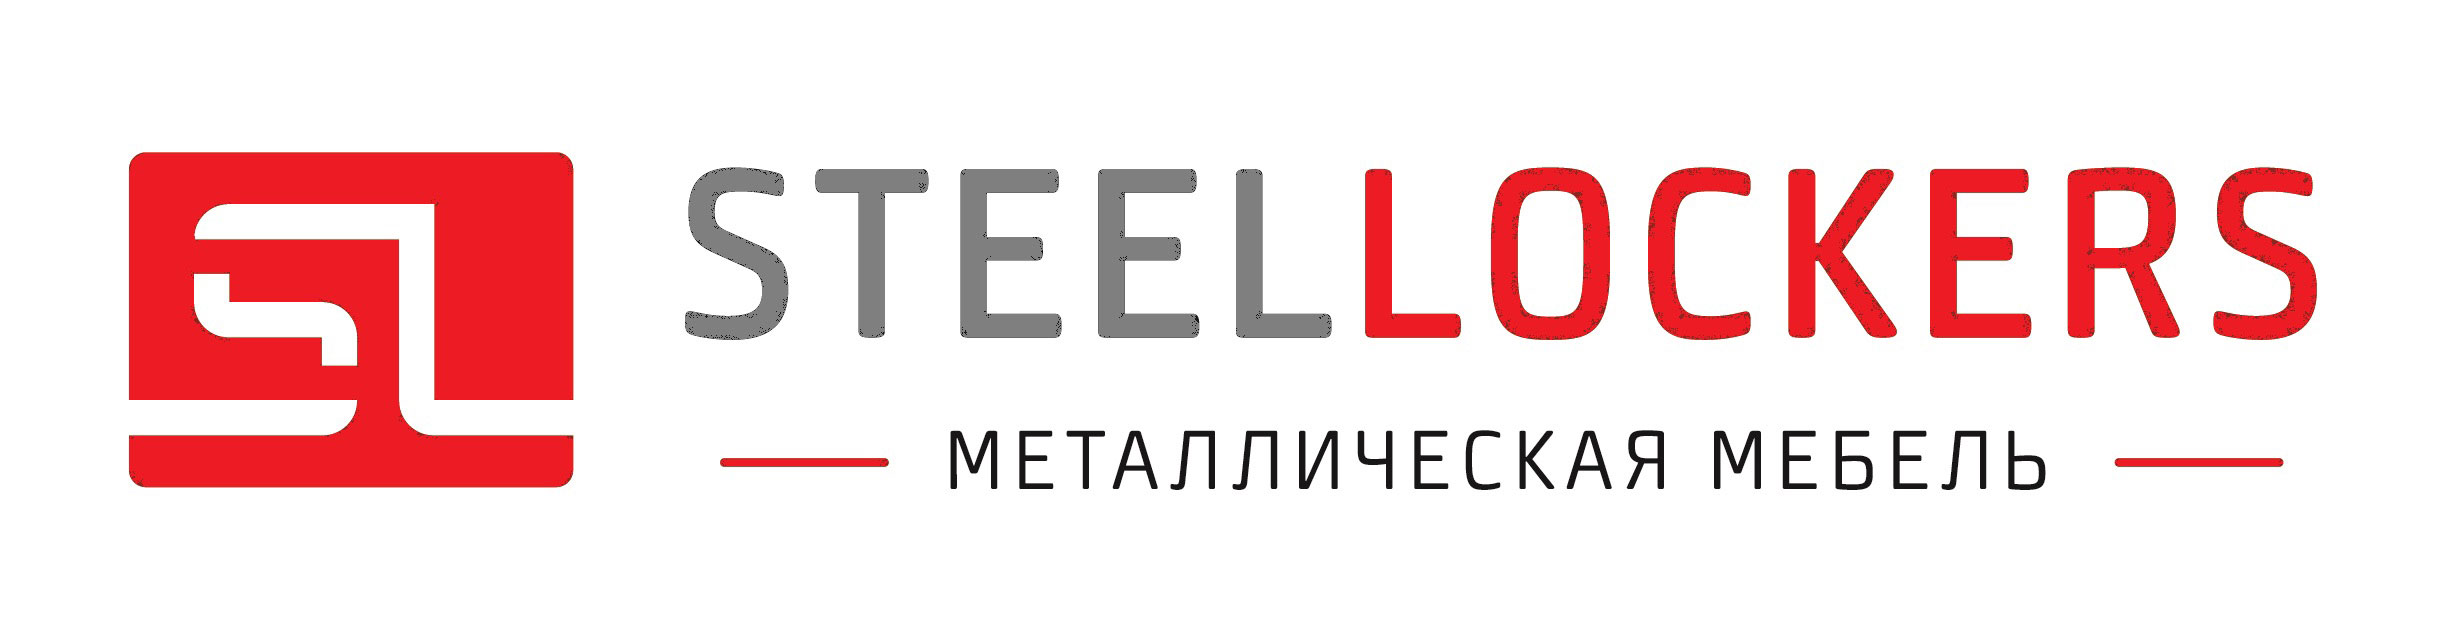 Steellockers